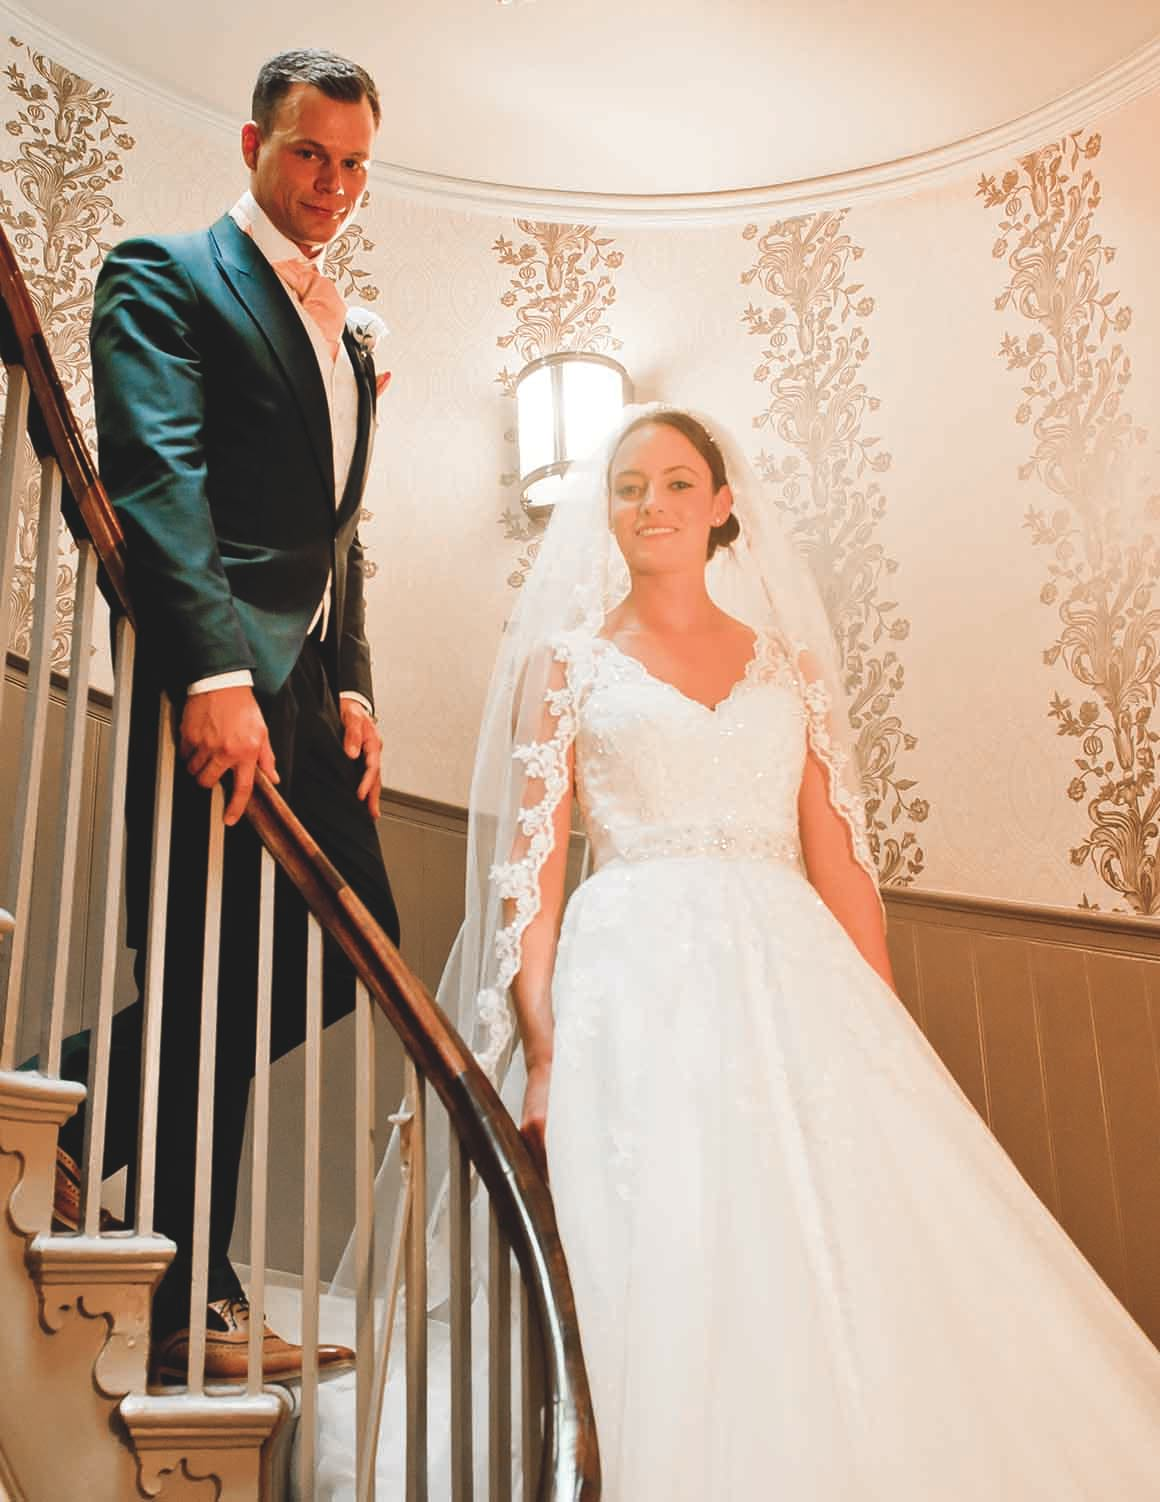 Weddings at The Arden Hotel Stratford-upon-Avon